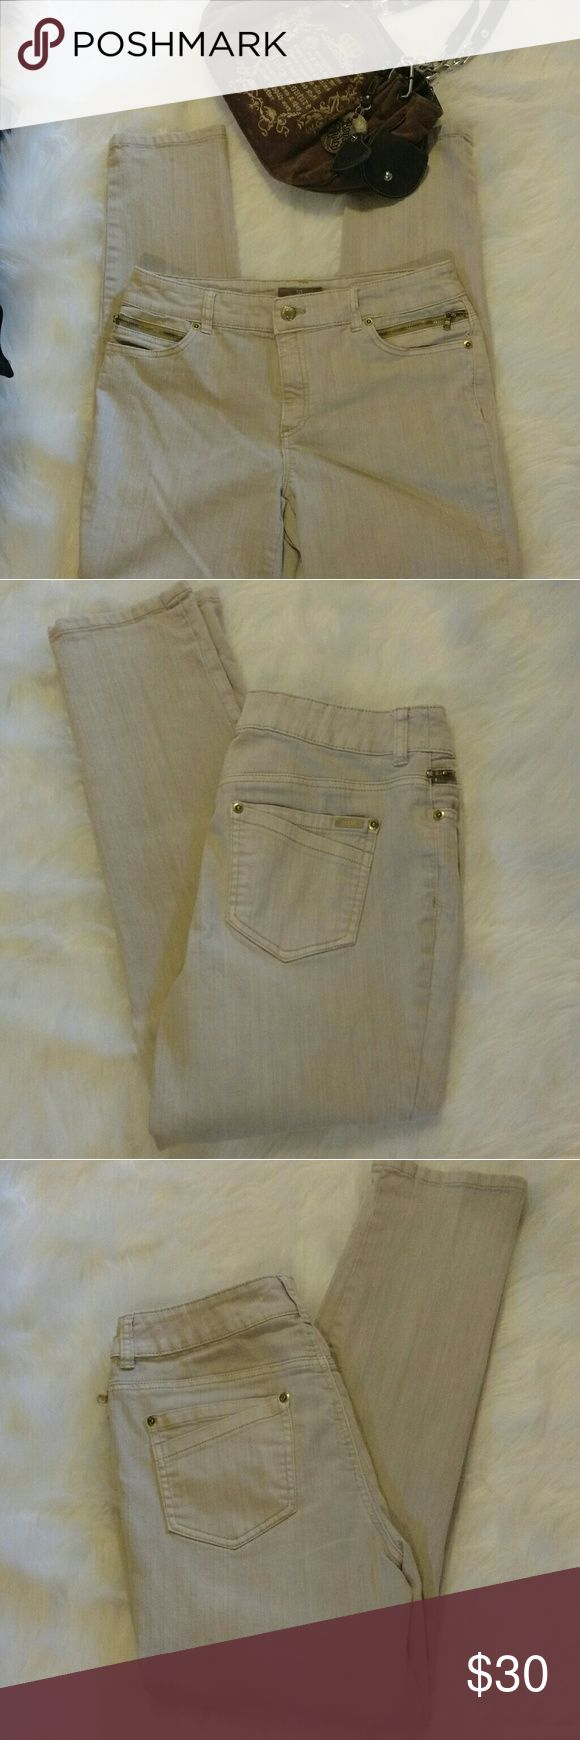 Chico's so slimming jeans Light gray with four pockets in front ( 2 zip ) and has two pockets in the back, with two pockets inside them. Very cute jeans size 1.. Please note that Chico jeans have their own sizing system so please be familiar with it before ordering. Like new condition, no stains from a pet and smoke free home. Chico's Jeans Skinny